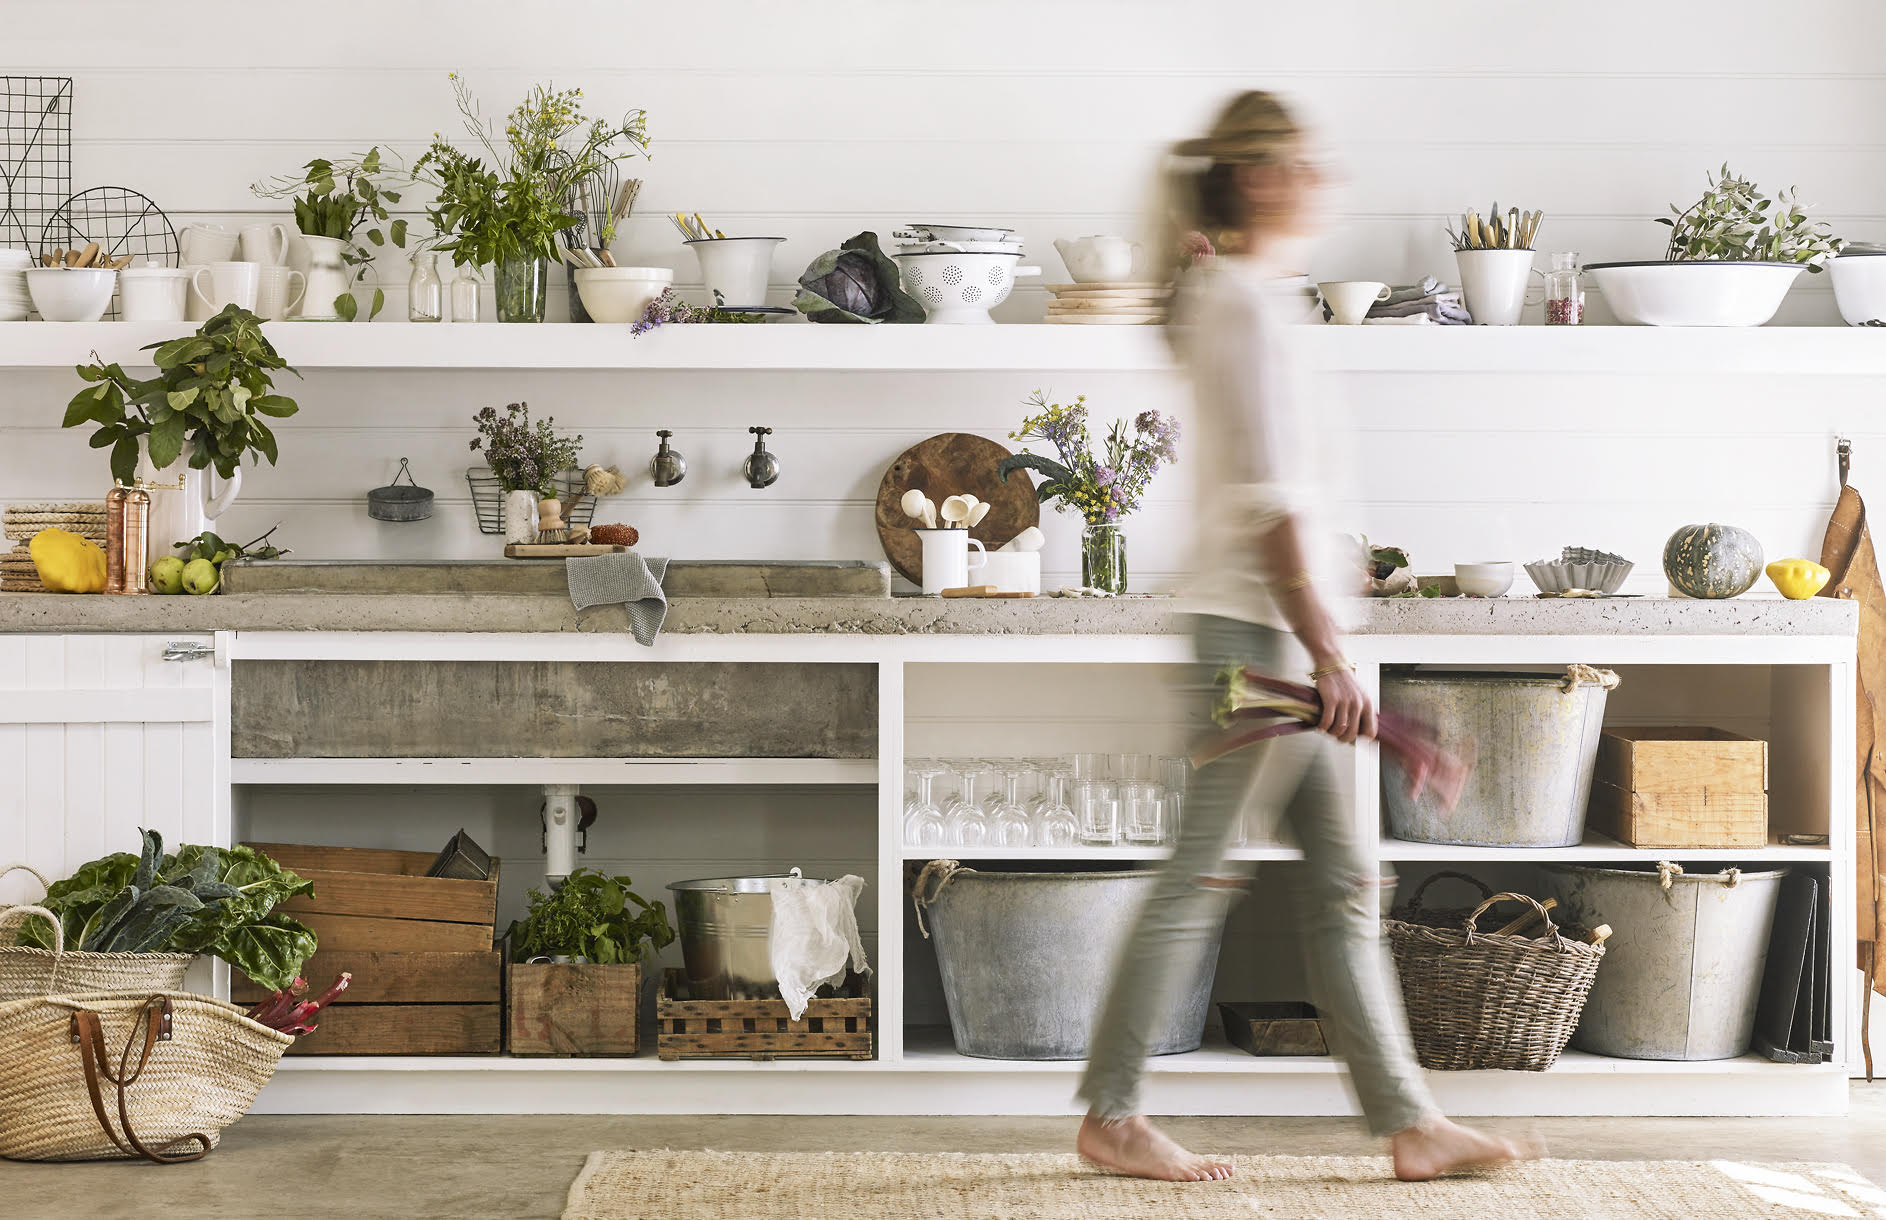 WIld delicious Gallery image beautiful kitchen with Amber walking through